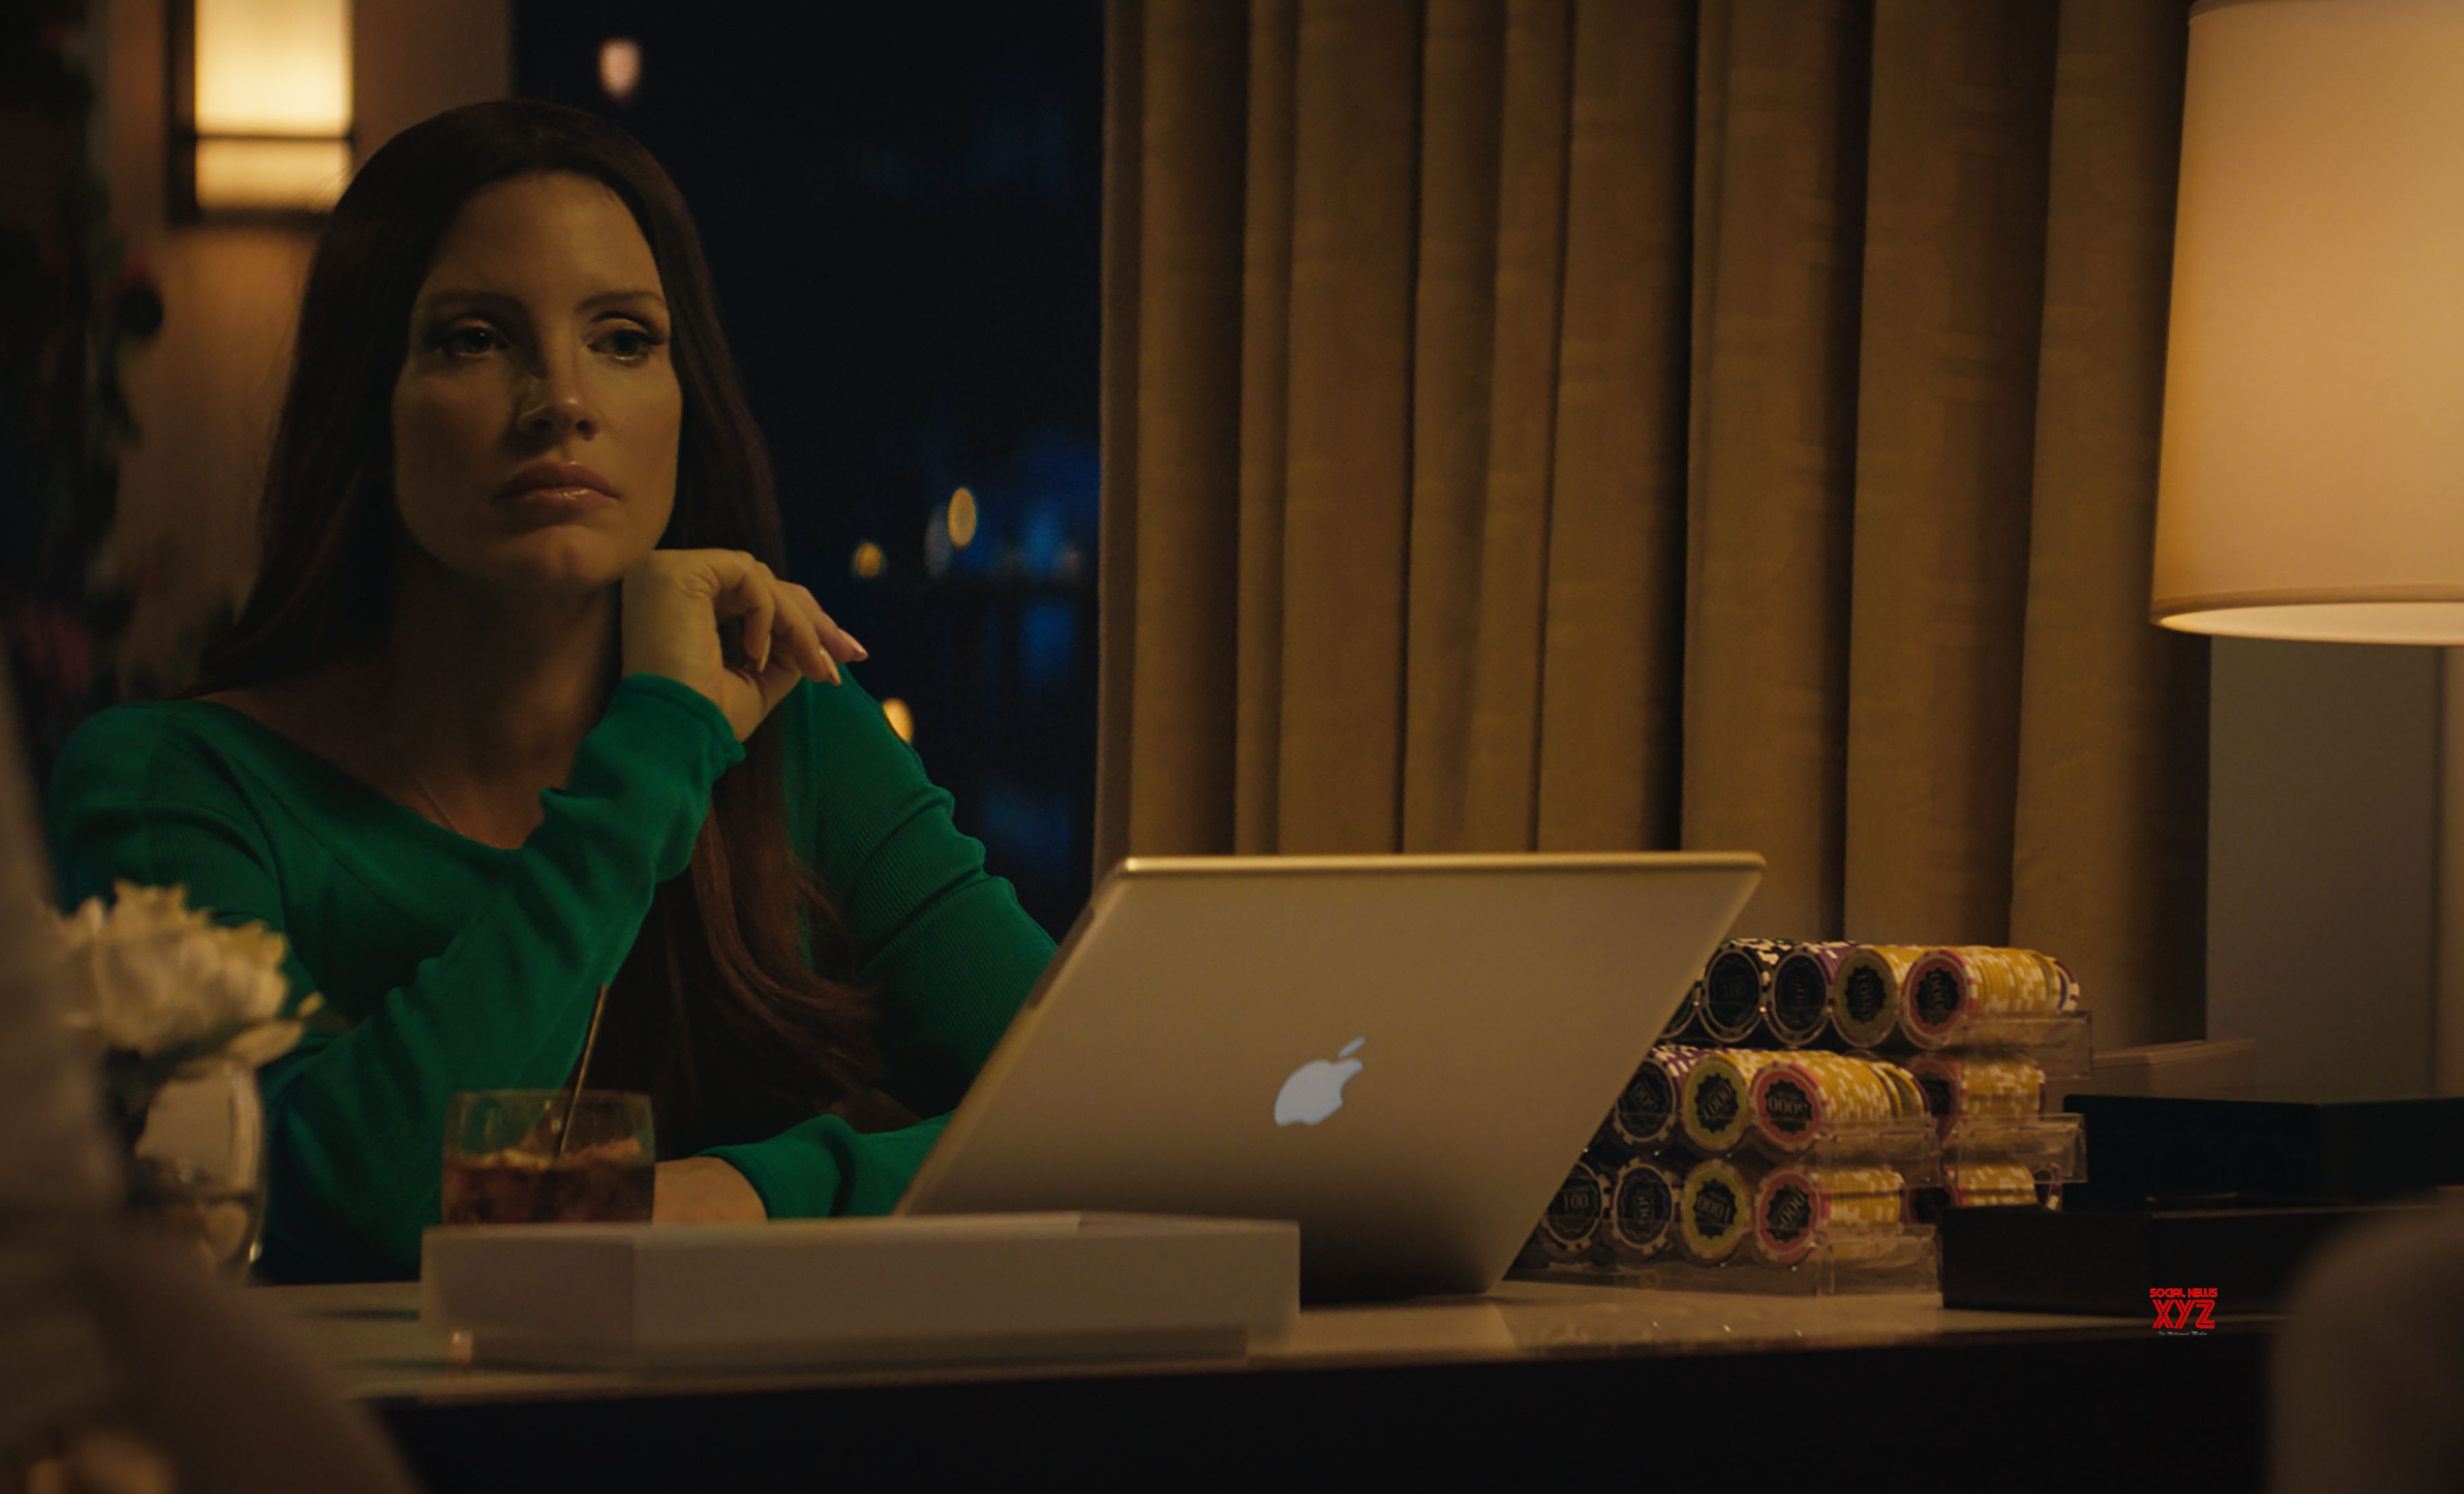 Jessica Chastain as Molly Bloom in Molly's Game